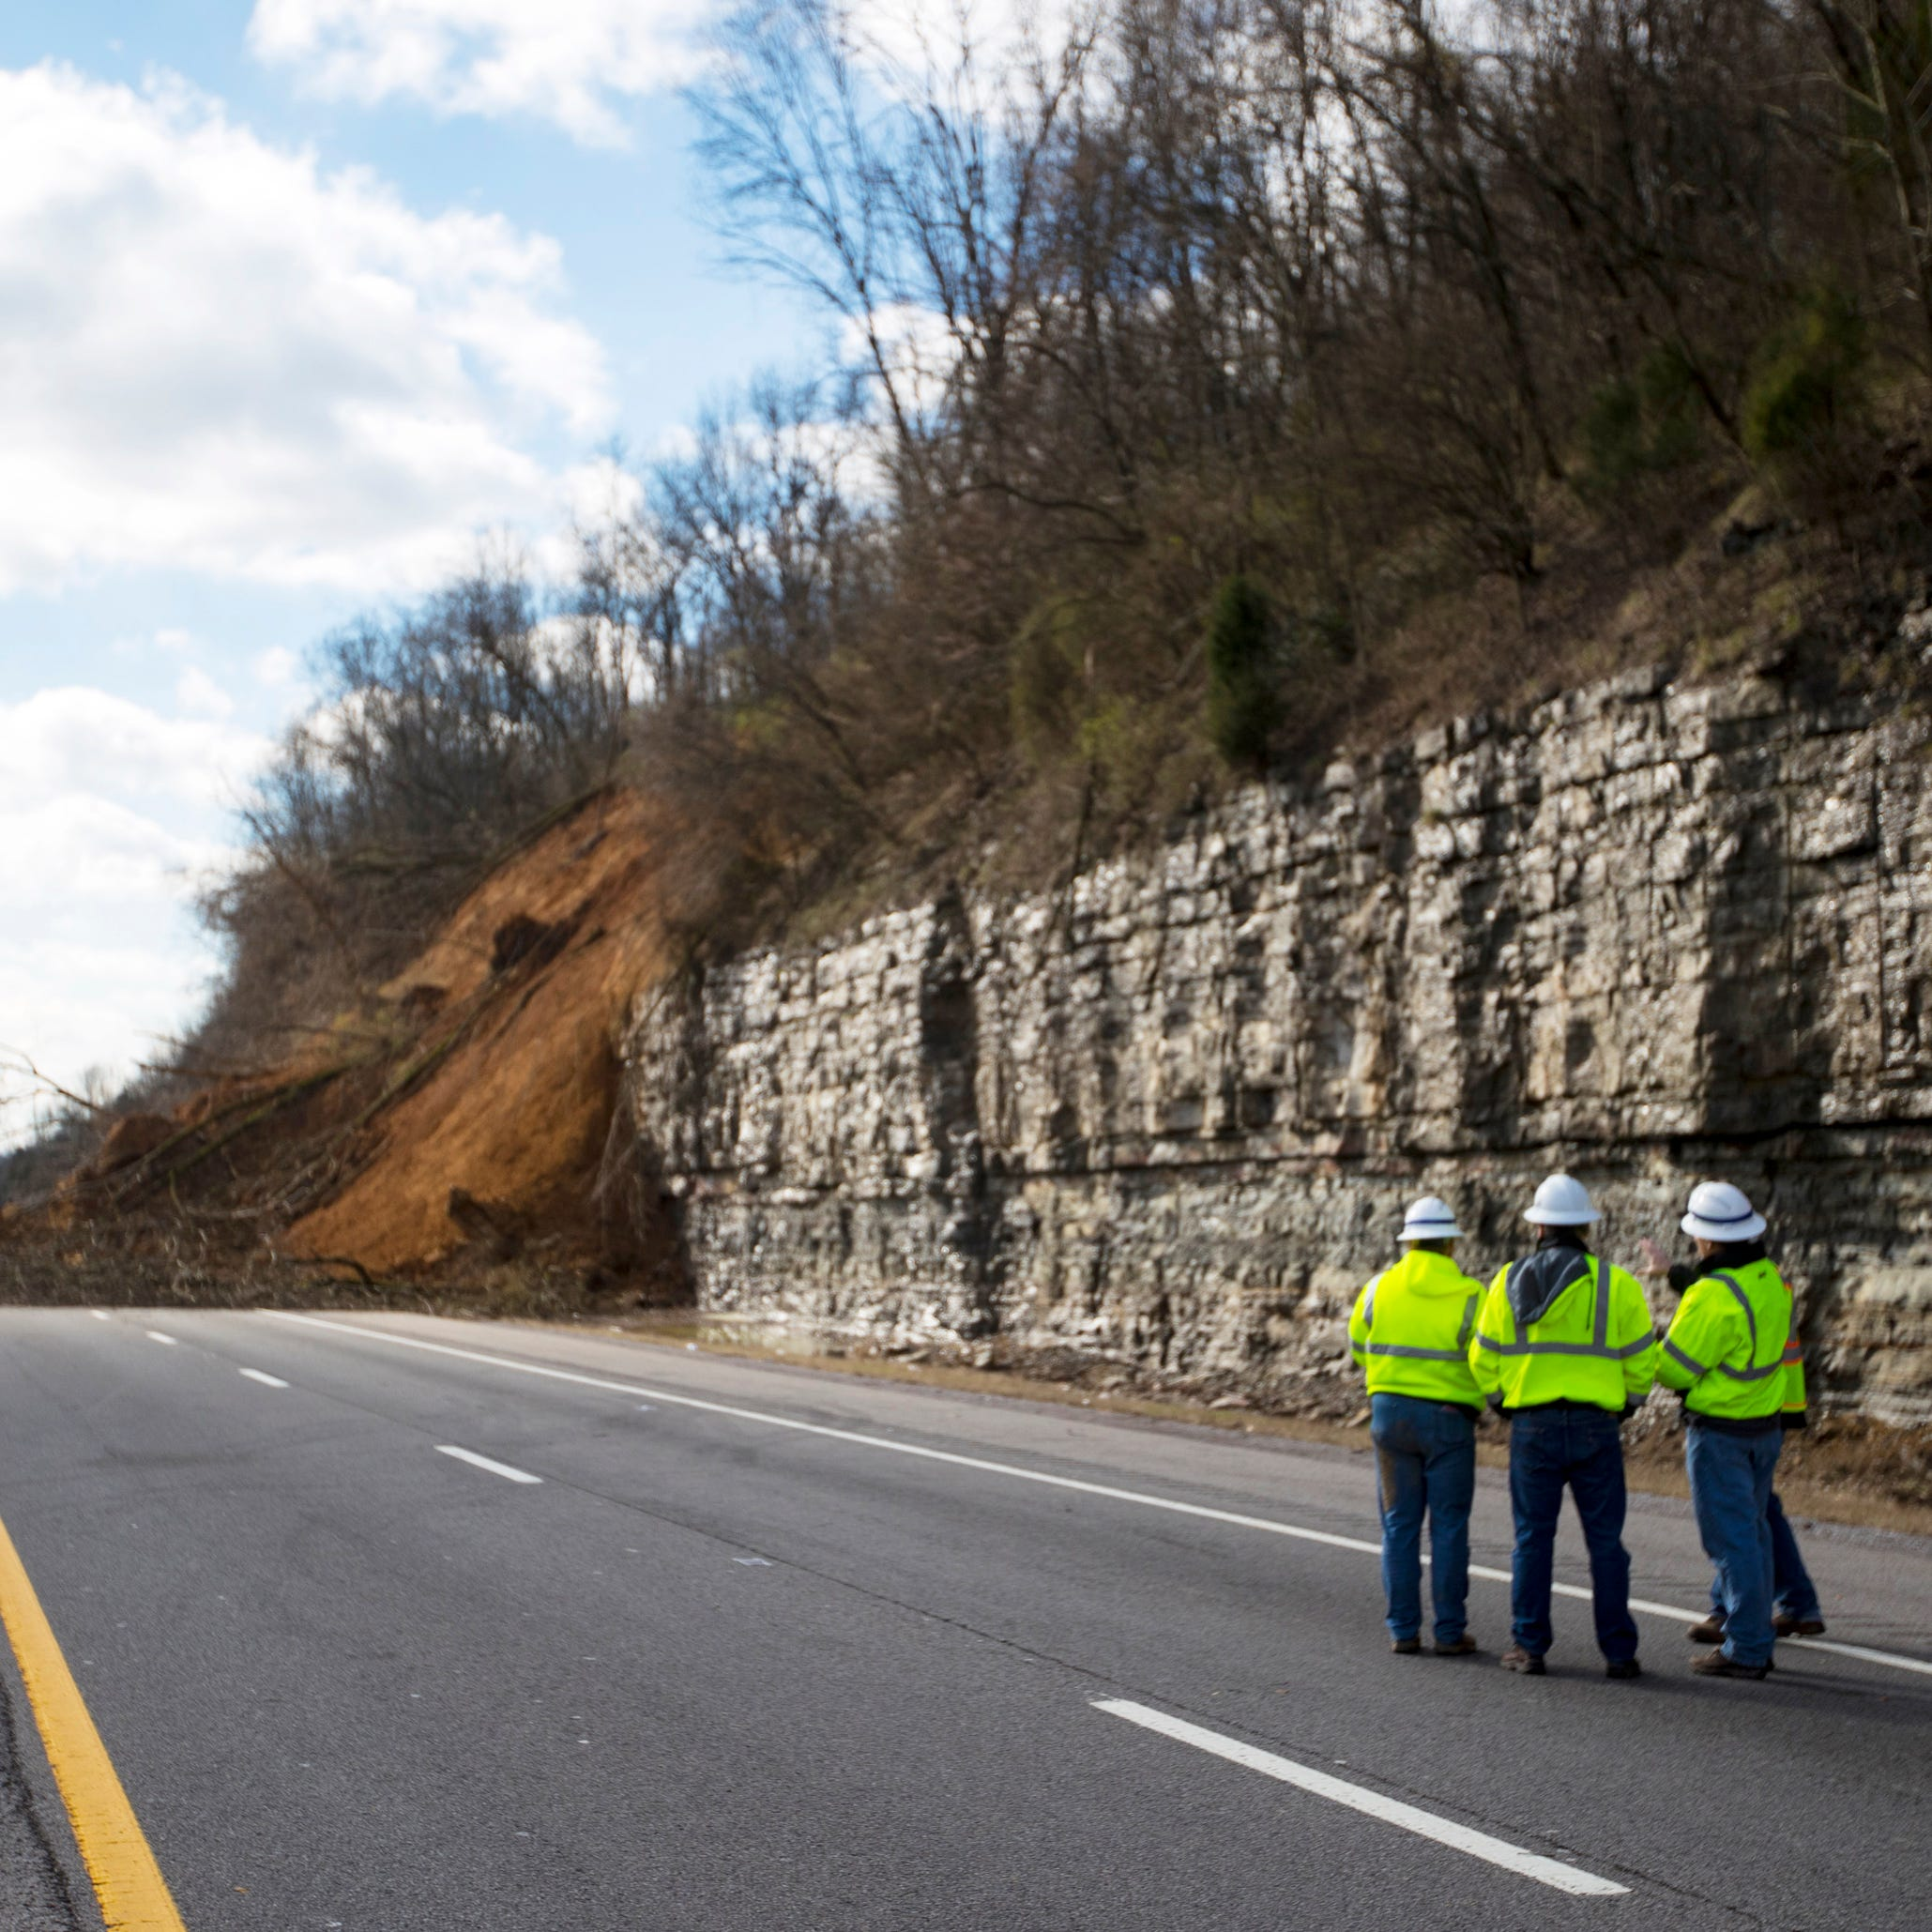 I-24 mudslide: TDOT says new lanes to open on time, traffic to start moving March 15